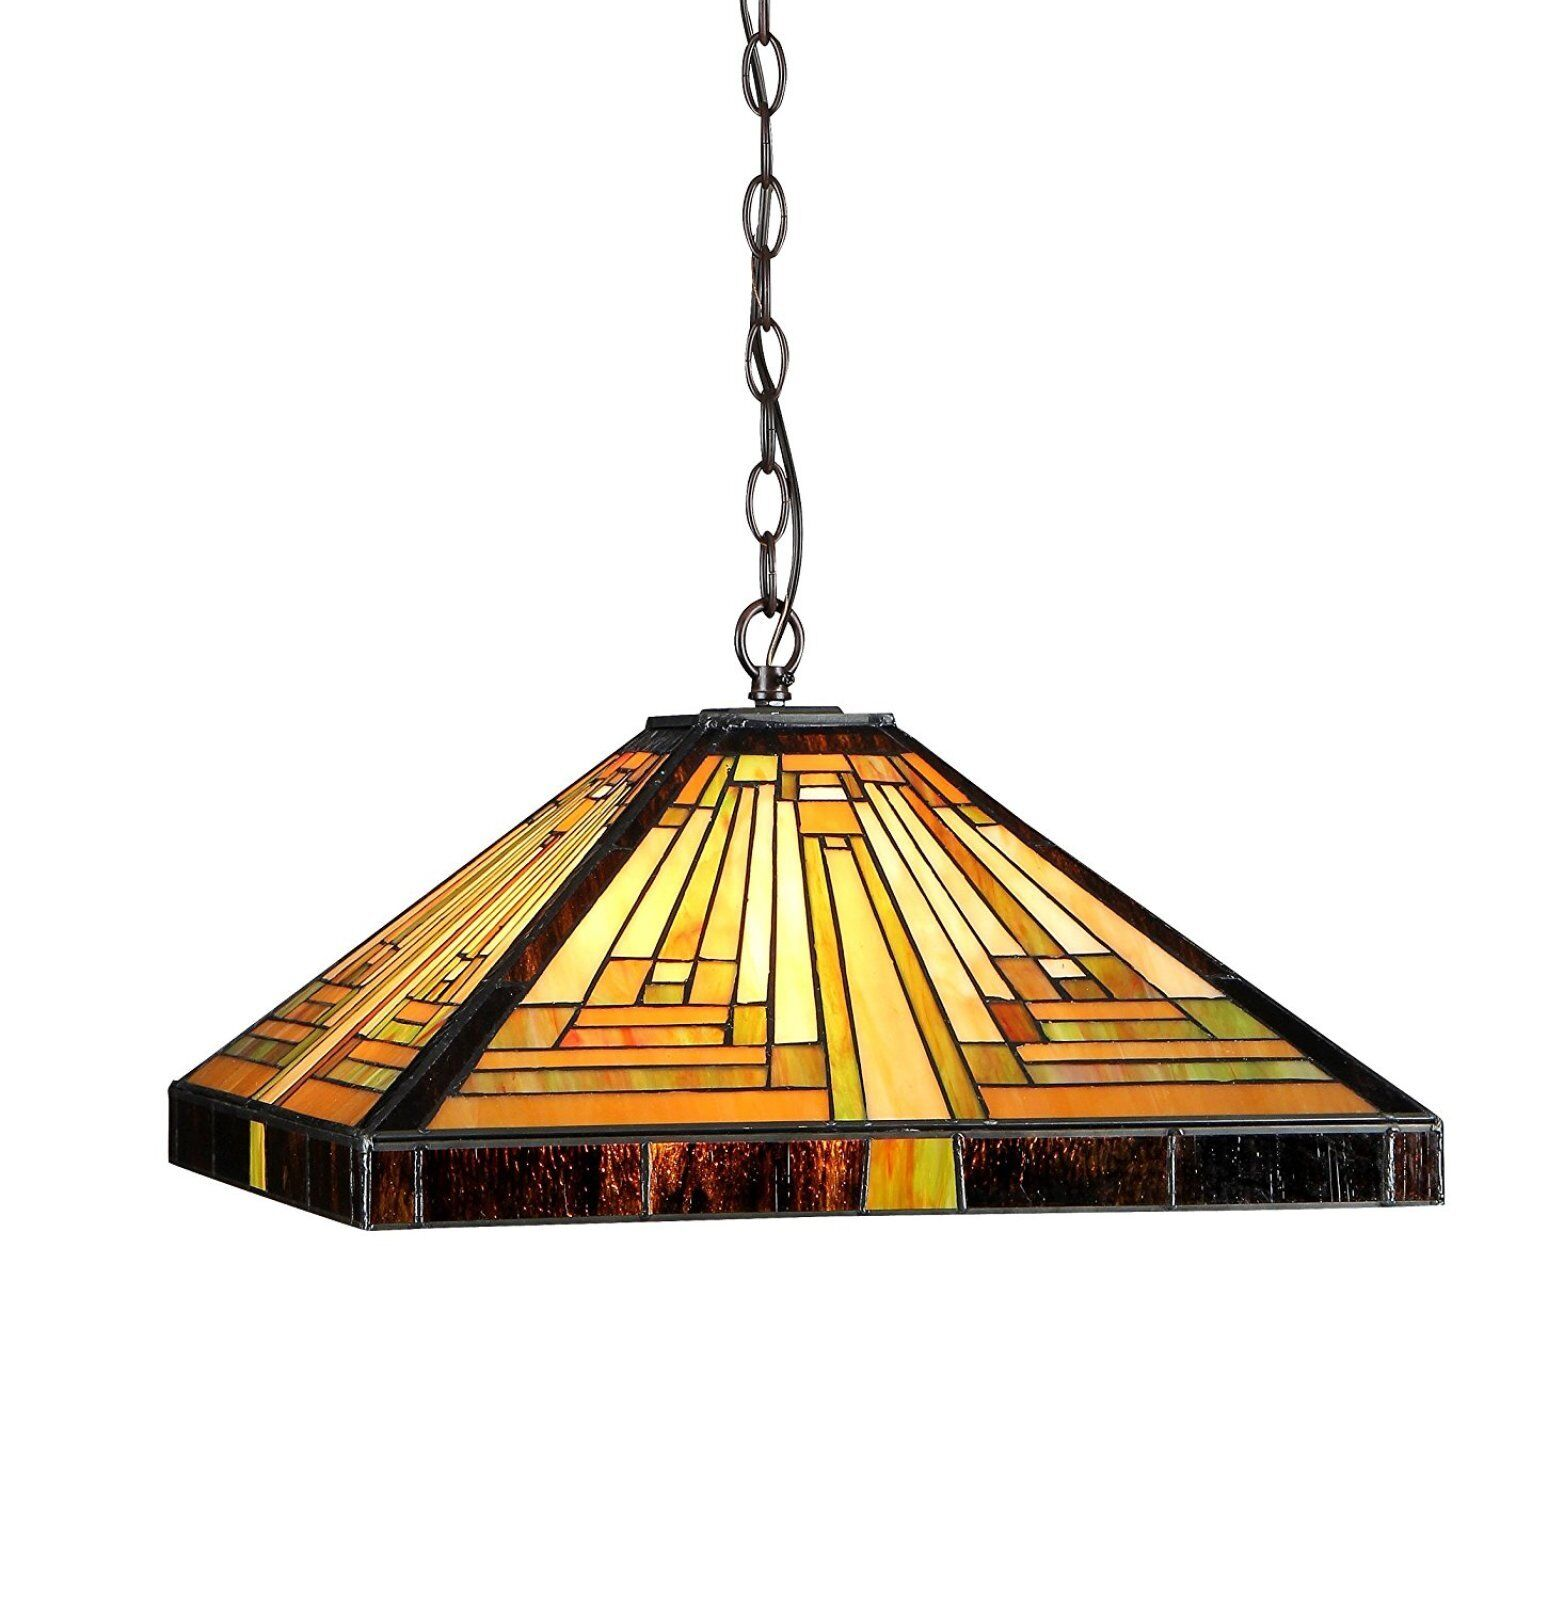 Pool table light billiard lamp metal tiffany style hanging lamps pool table light billiard lamp metal tiffany style hanging lamps stained glass aloadofball Choice Image